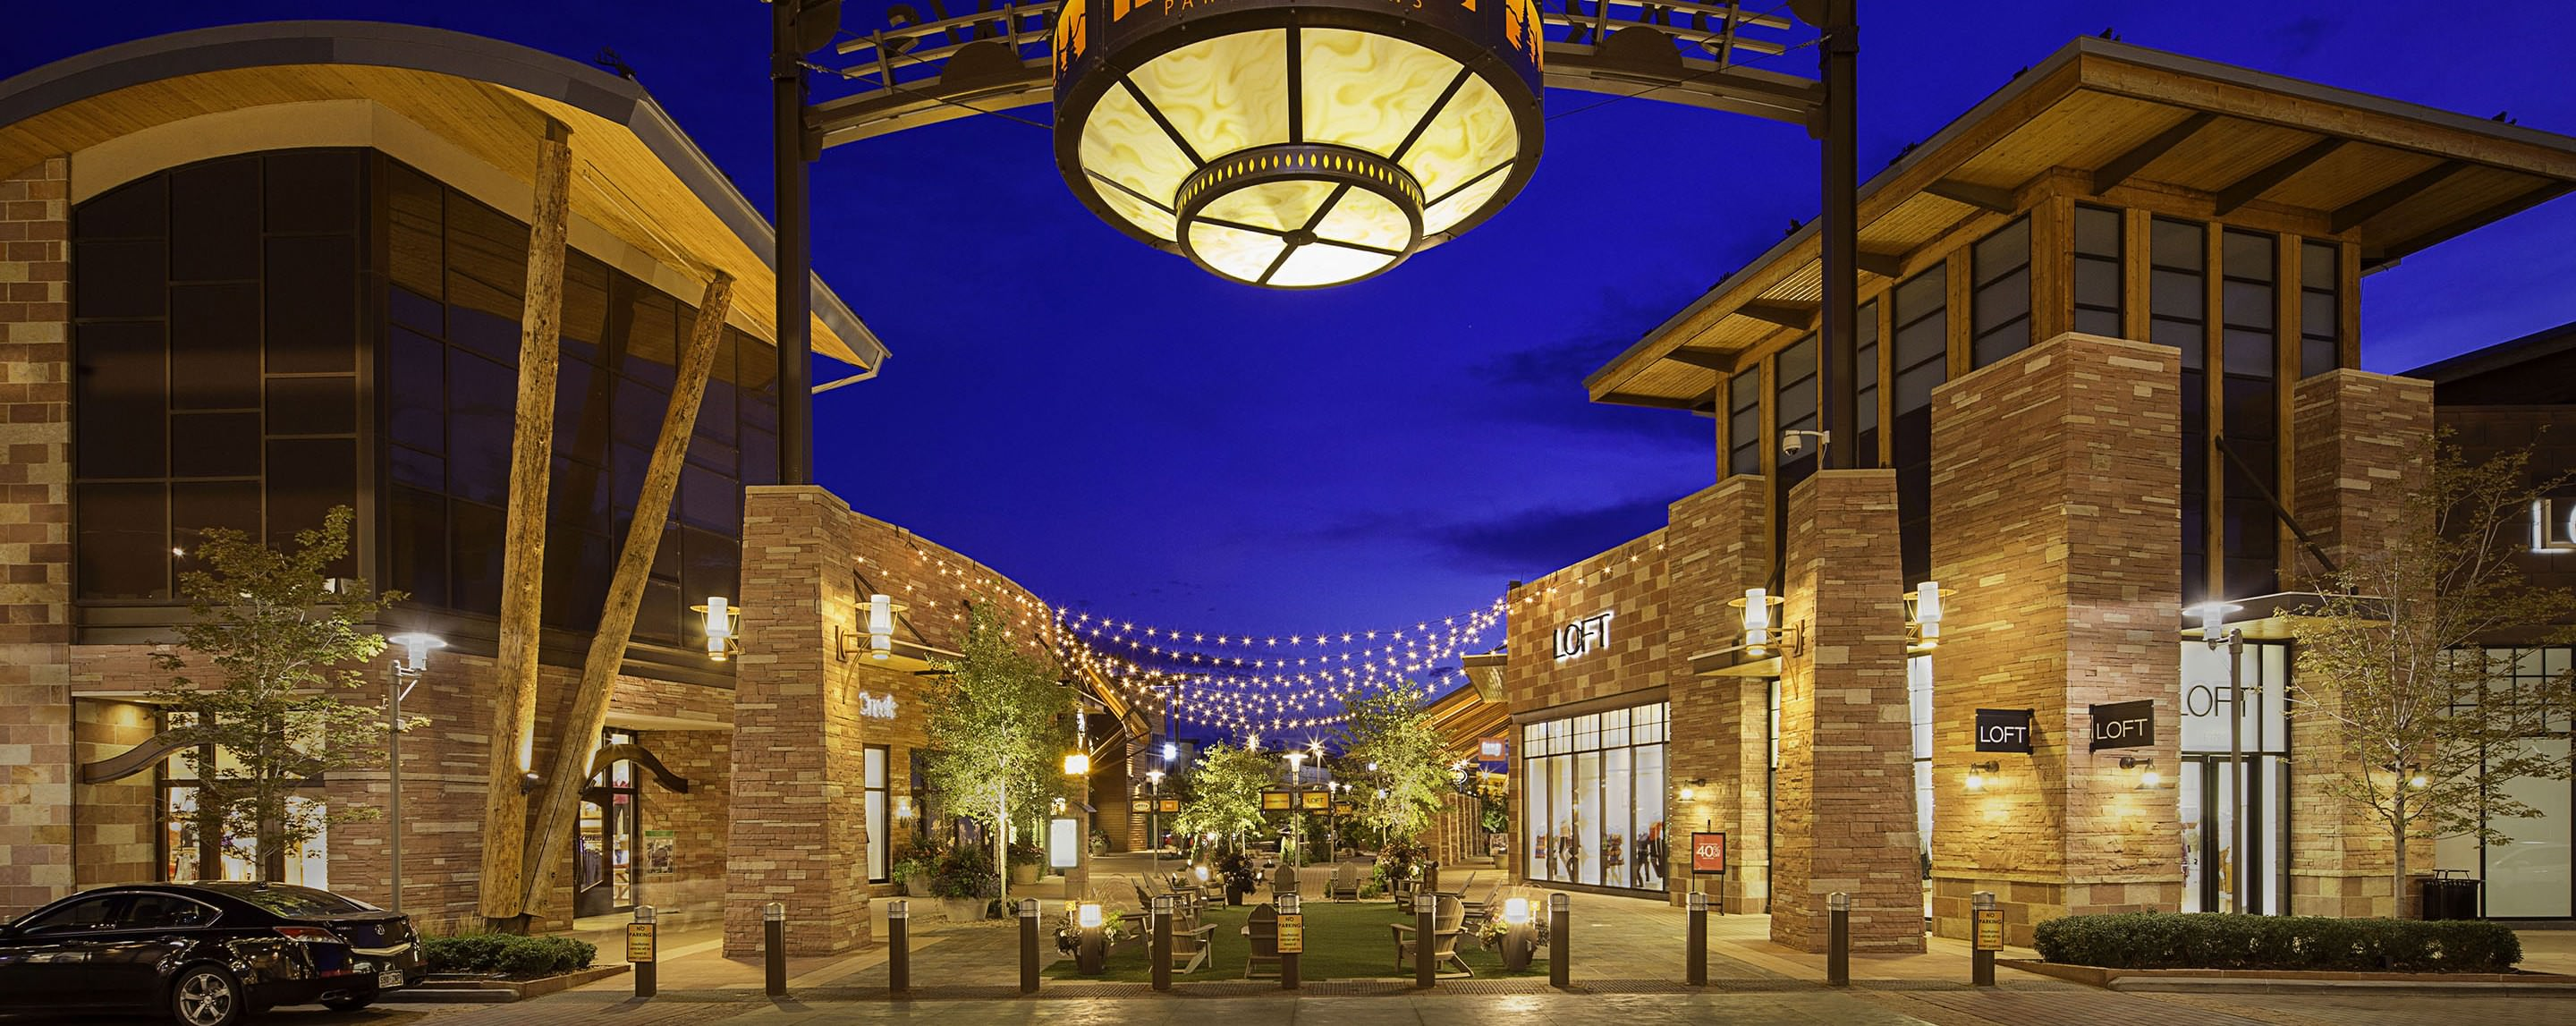 A large light fixture hangs over the entrance to a mall courtyard containing a LOFT store, among others.